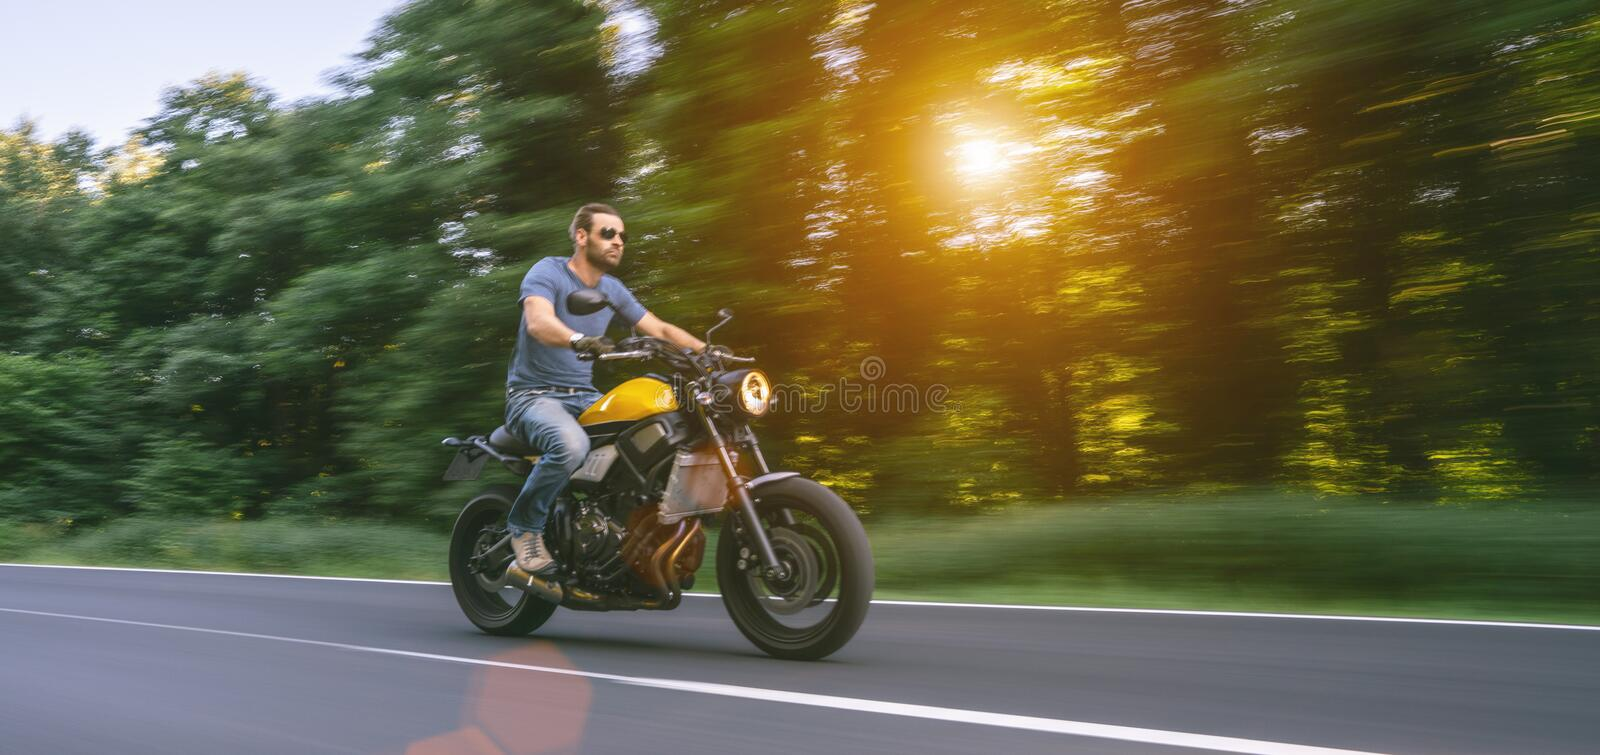 Motorbike on the road riding. having fun riding the empty road on a motorcycle tour / journey royalty free stock images